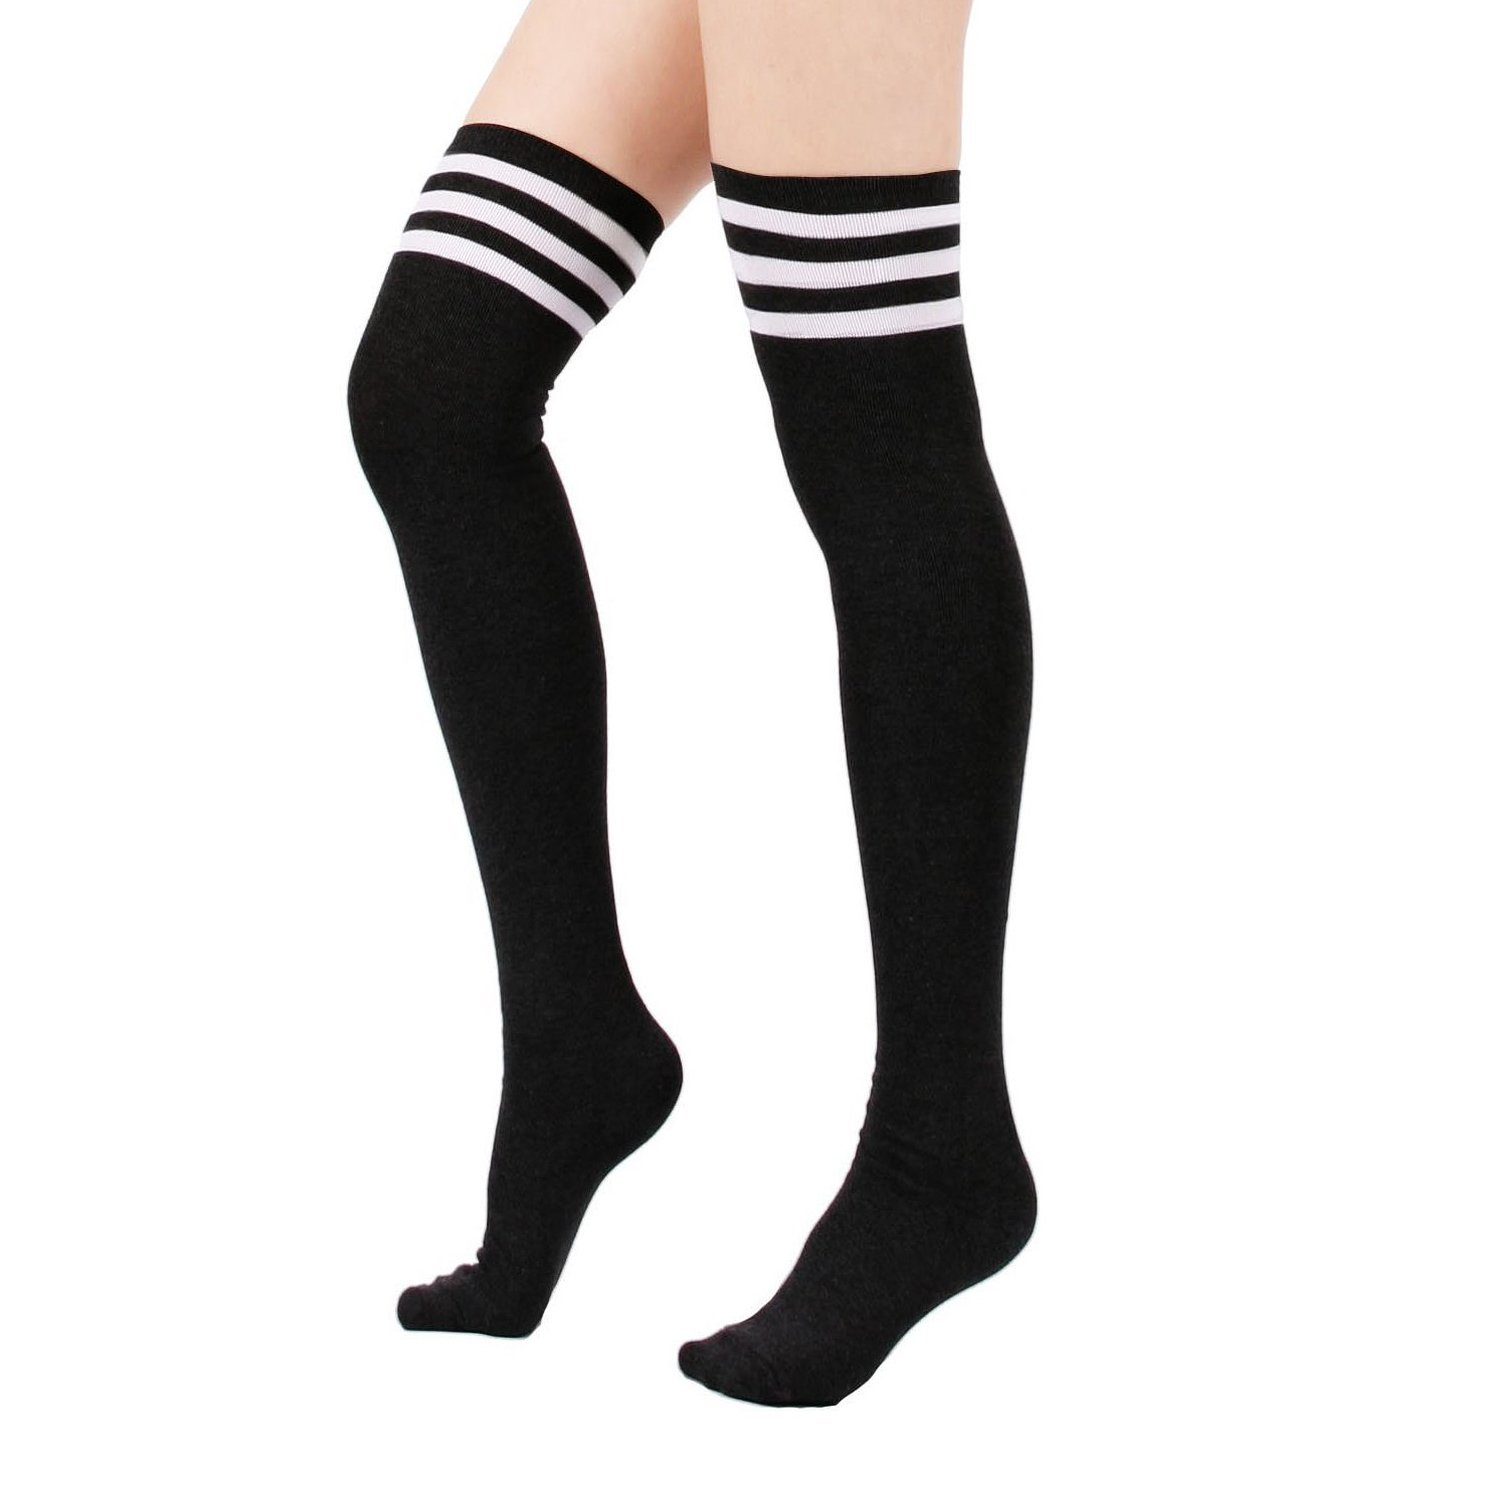 f1528b38a03b6 Get Quotations · Zando Women's Cotton Athlete Triple Stripe Tights Over The Knee  Thigh High Socks Casual Above Knee